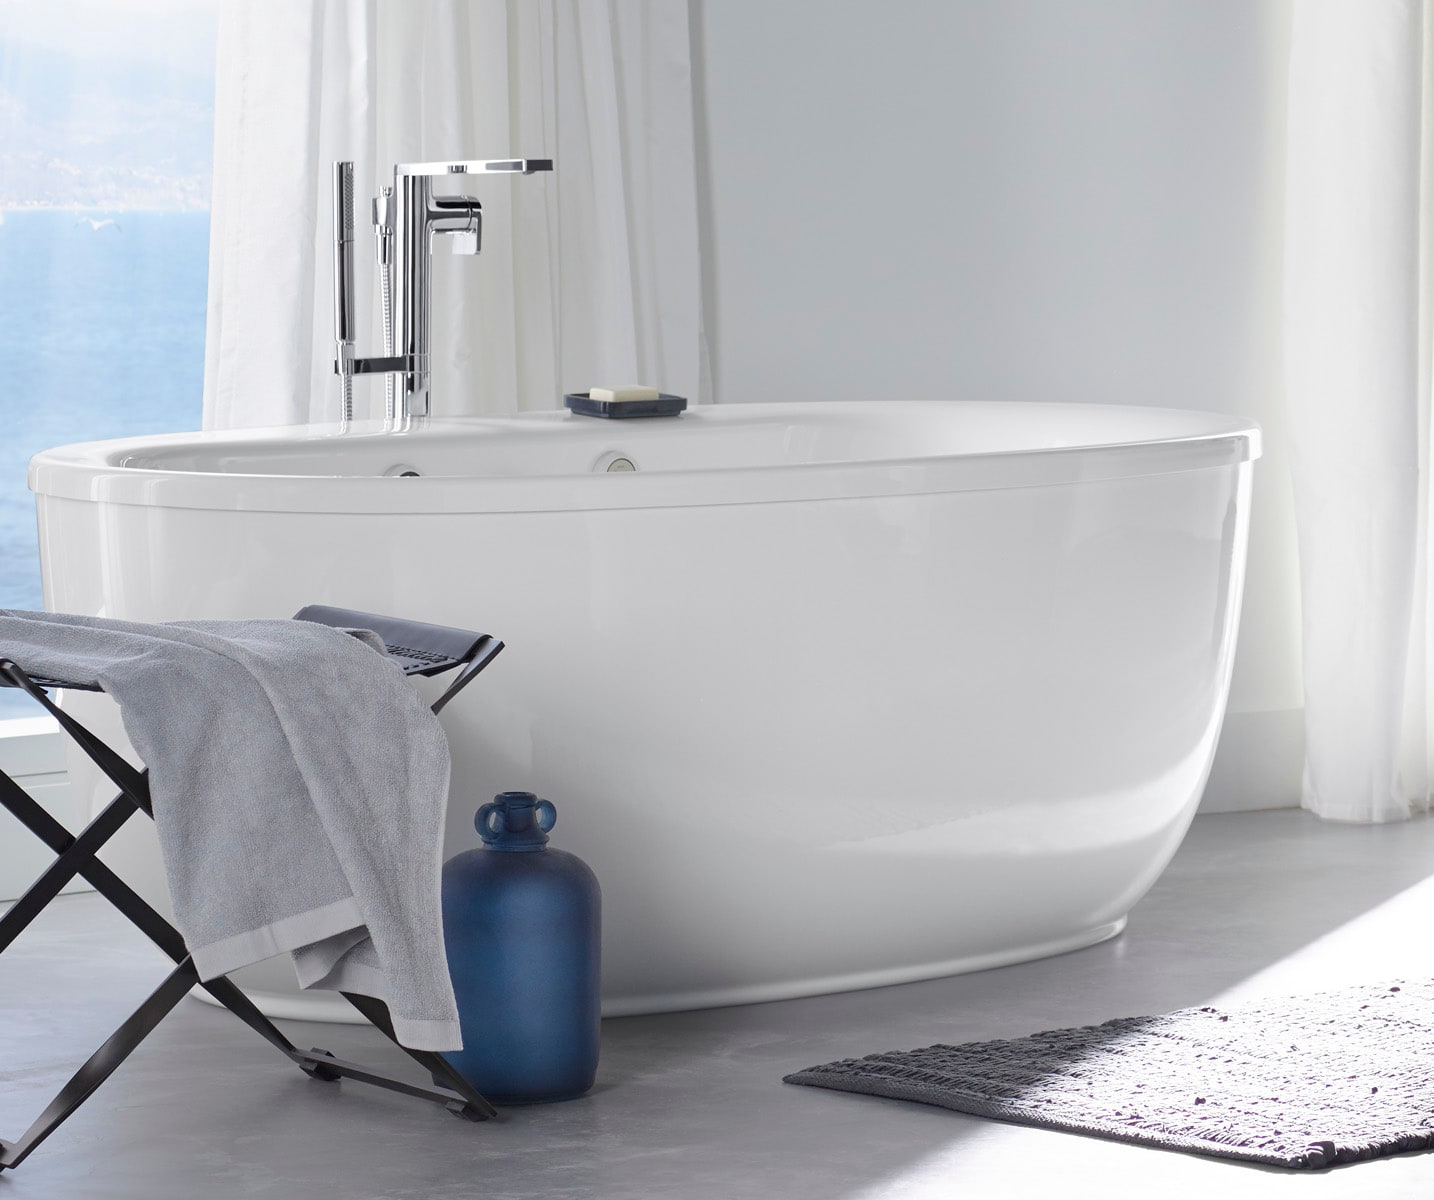 Charmant Kohler K T73087 4 CP Polished Chrome Composed Floor Mounted Tub Filler With  Hand Shower And Built In Diverter   Faucet.com